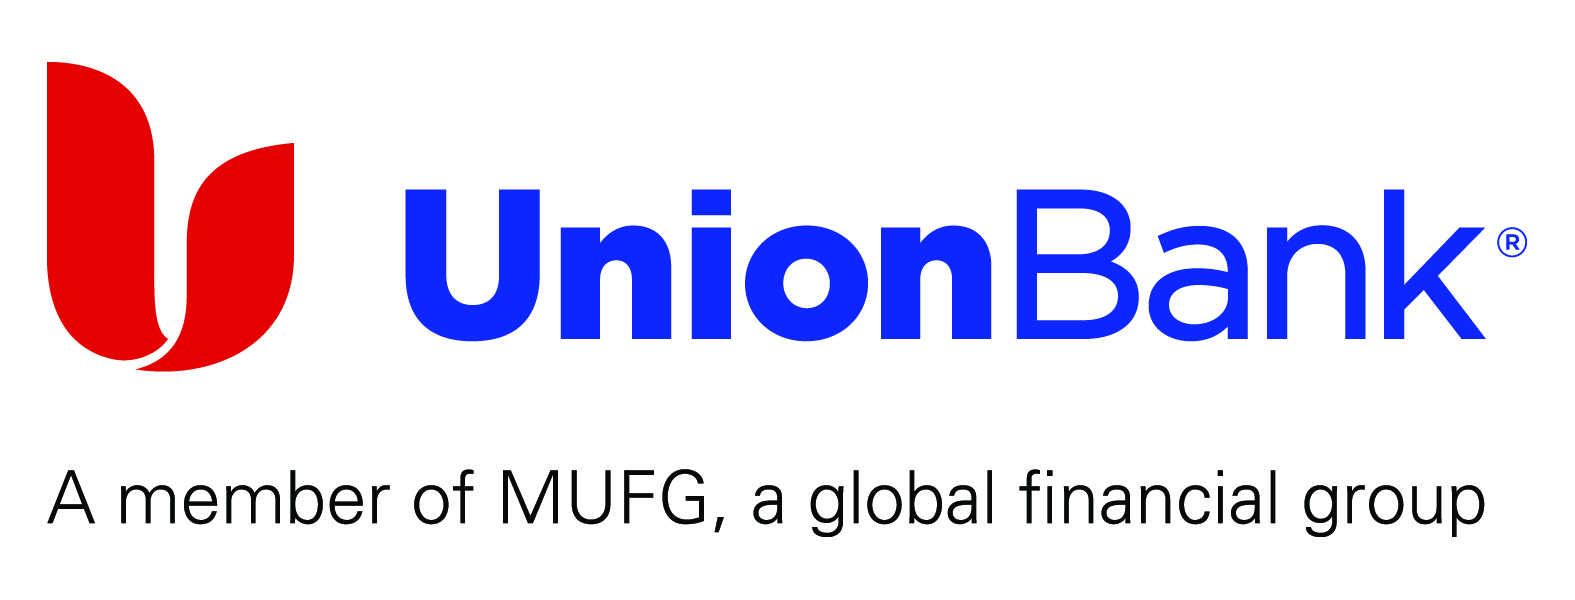 UB_logo_endorsement_color_CMYK.jpg